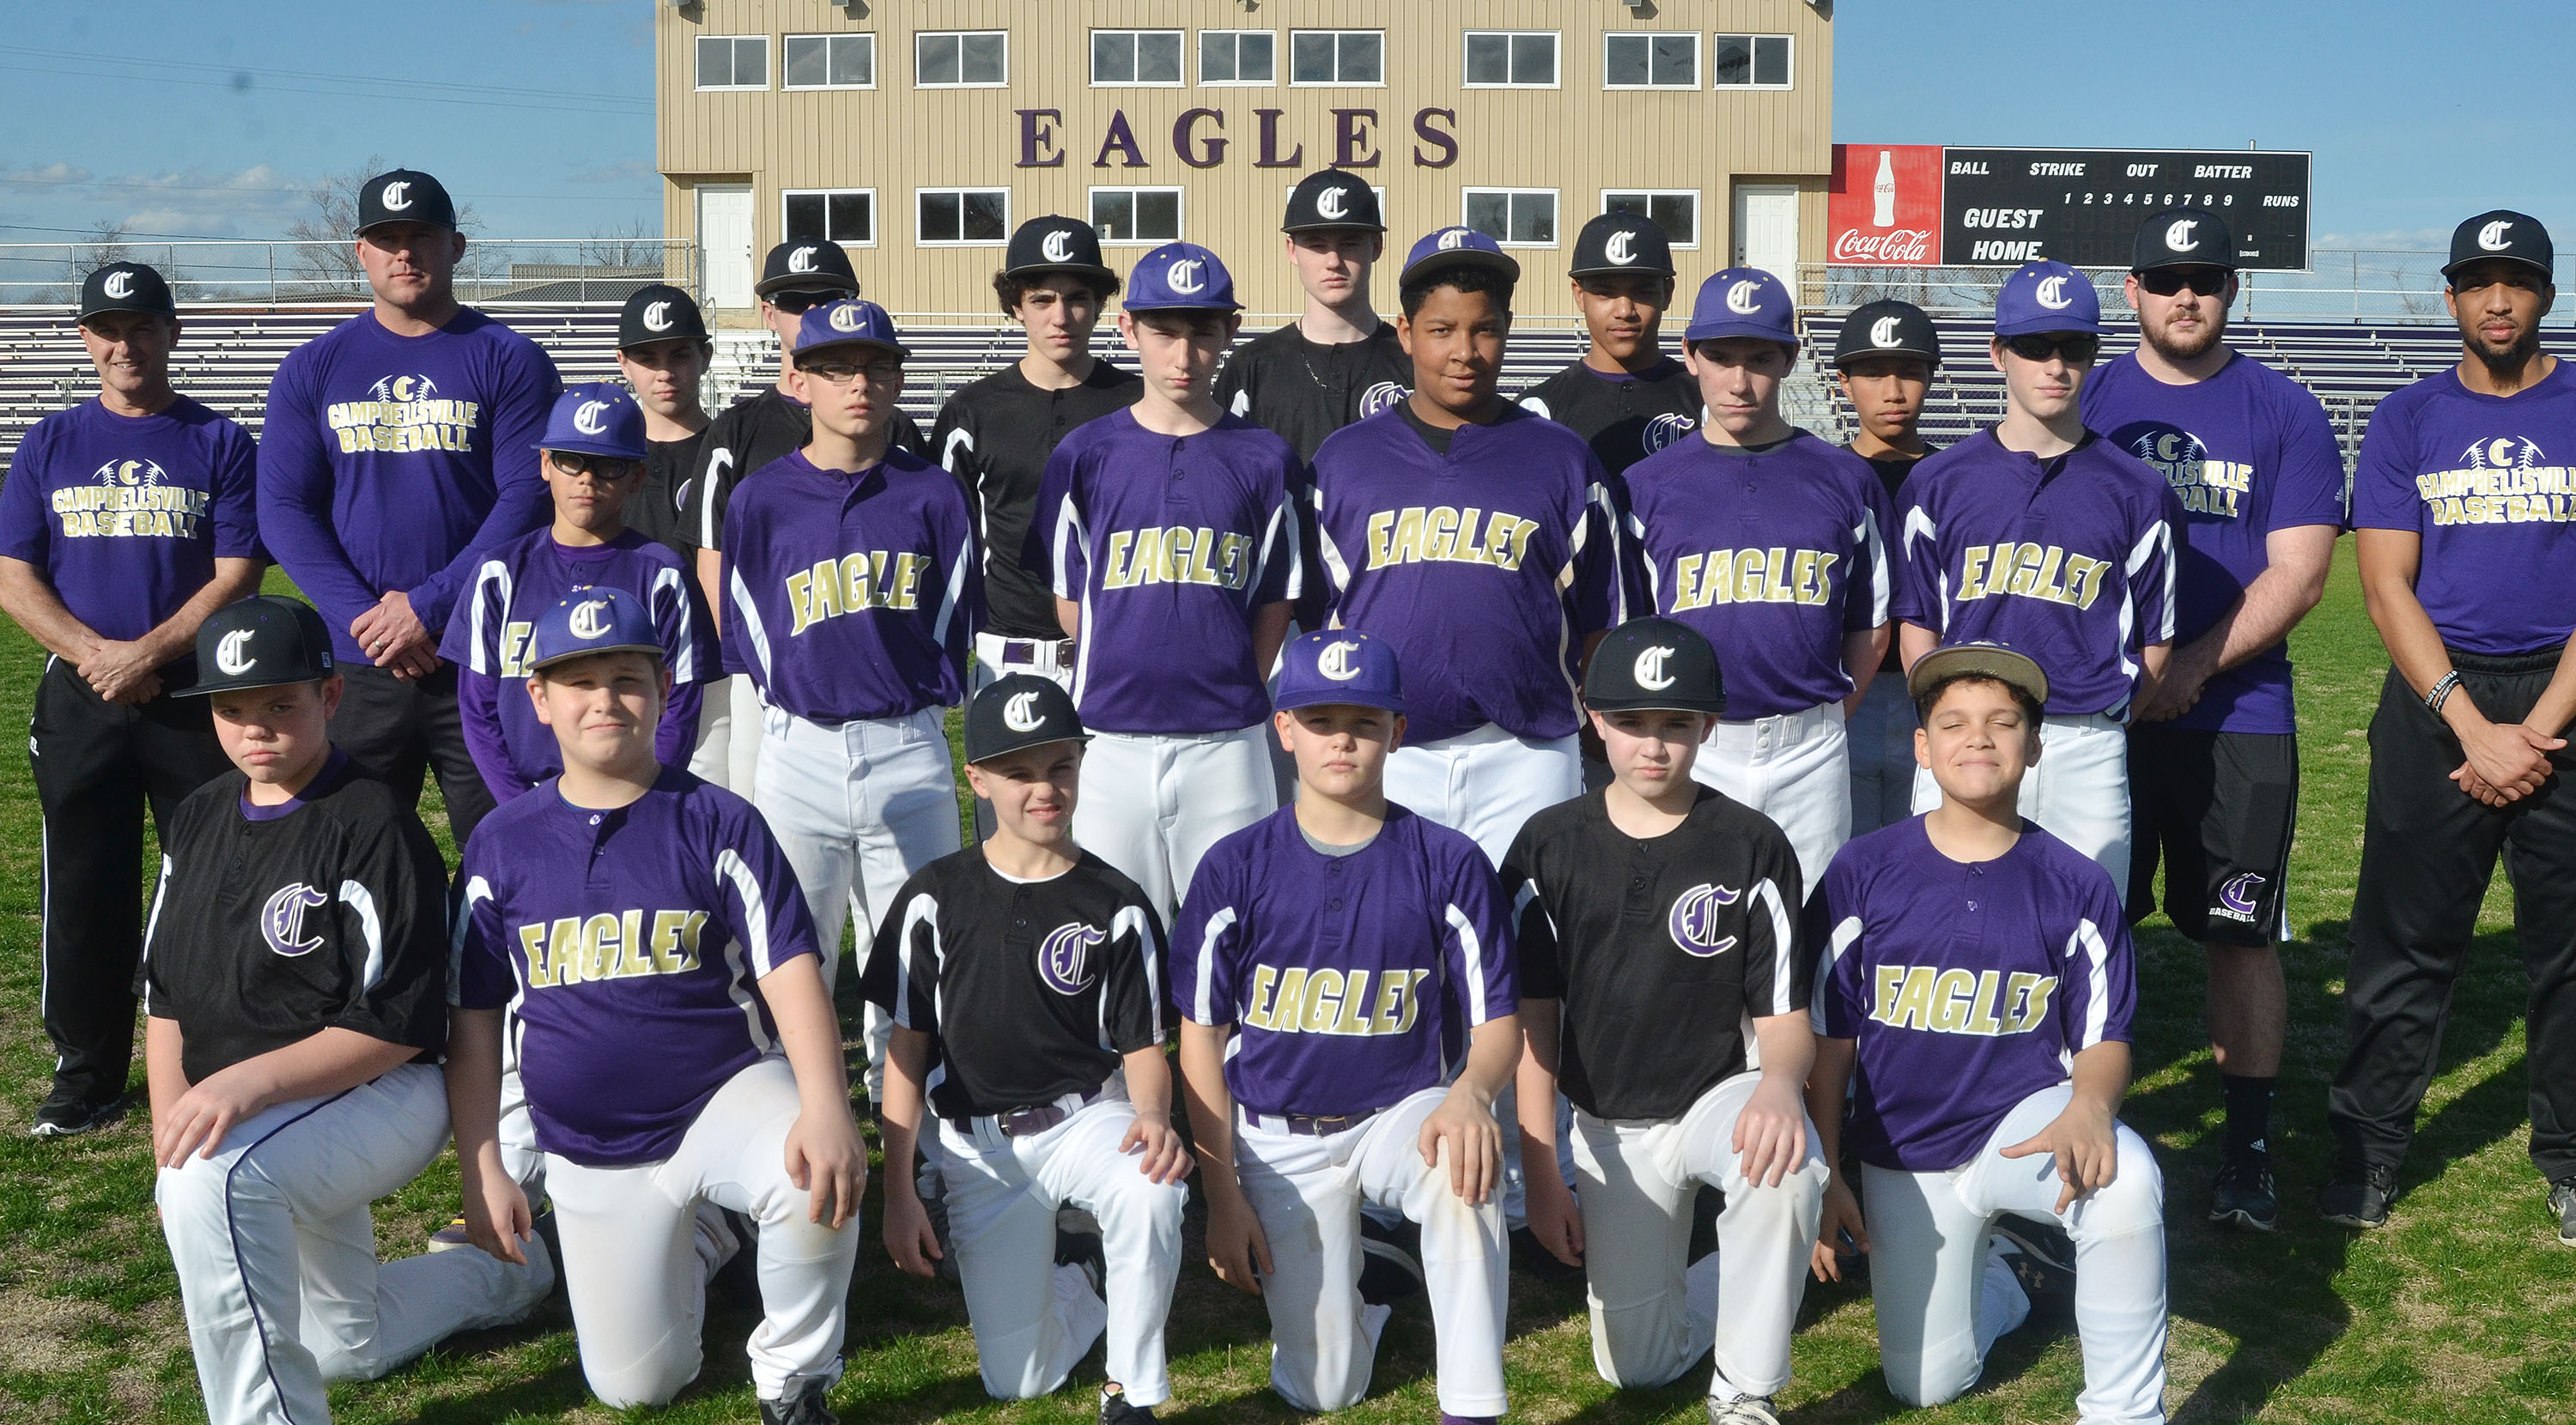 This year's CMS baseball team includes, from left, front, sixth-graders Hayden Jones, Weston Mattingly, Chase Hord, Konner Forbis, Bryce Newton and Kaydon Taylor. Second row, seventh-graders Logan Phillips, Jarred Mays, Waylon Franklin, Bryson Karr, Peyton Dabney and Seth Hash. Back, coaches Lynn Kearney and Daniel Forbis, eighth-graders Clark Kidwell, Blase Wheatley, Kameron Smith, Tristin Faulkner, Reggie Thomas and Jastyn Shively and coaches Brett Lowell and George Boyd.